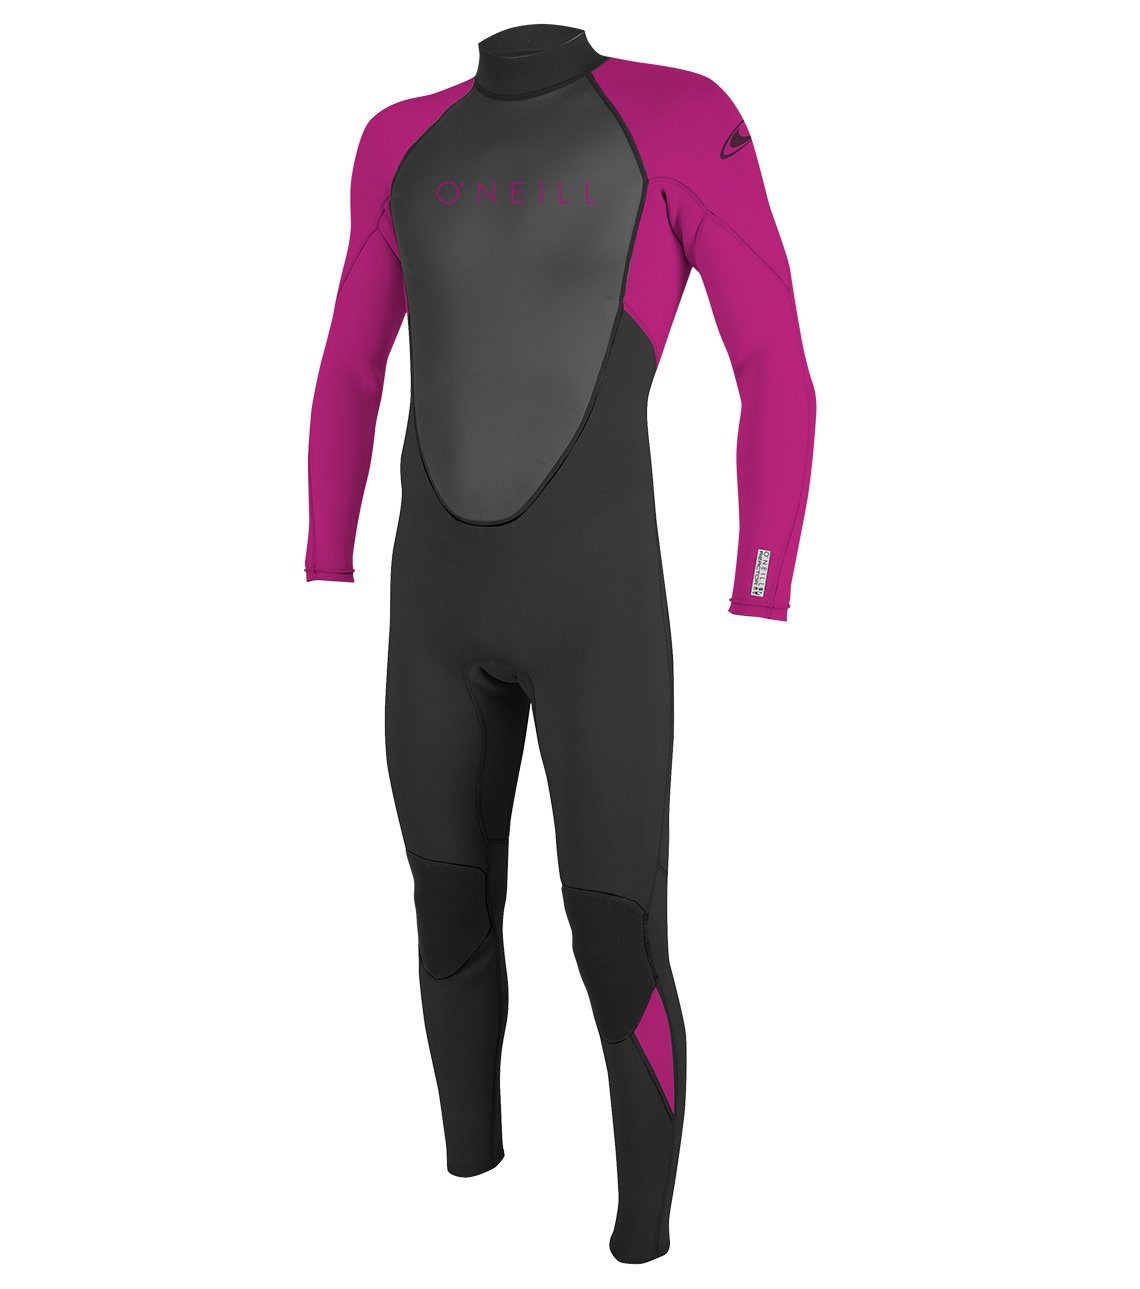 O'Neill Youth Reactor-2 3/2mm Back Zip Full Wetsuit, Black/Berry, 4